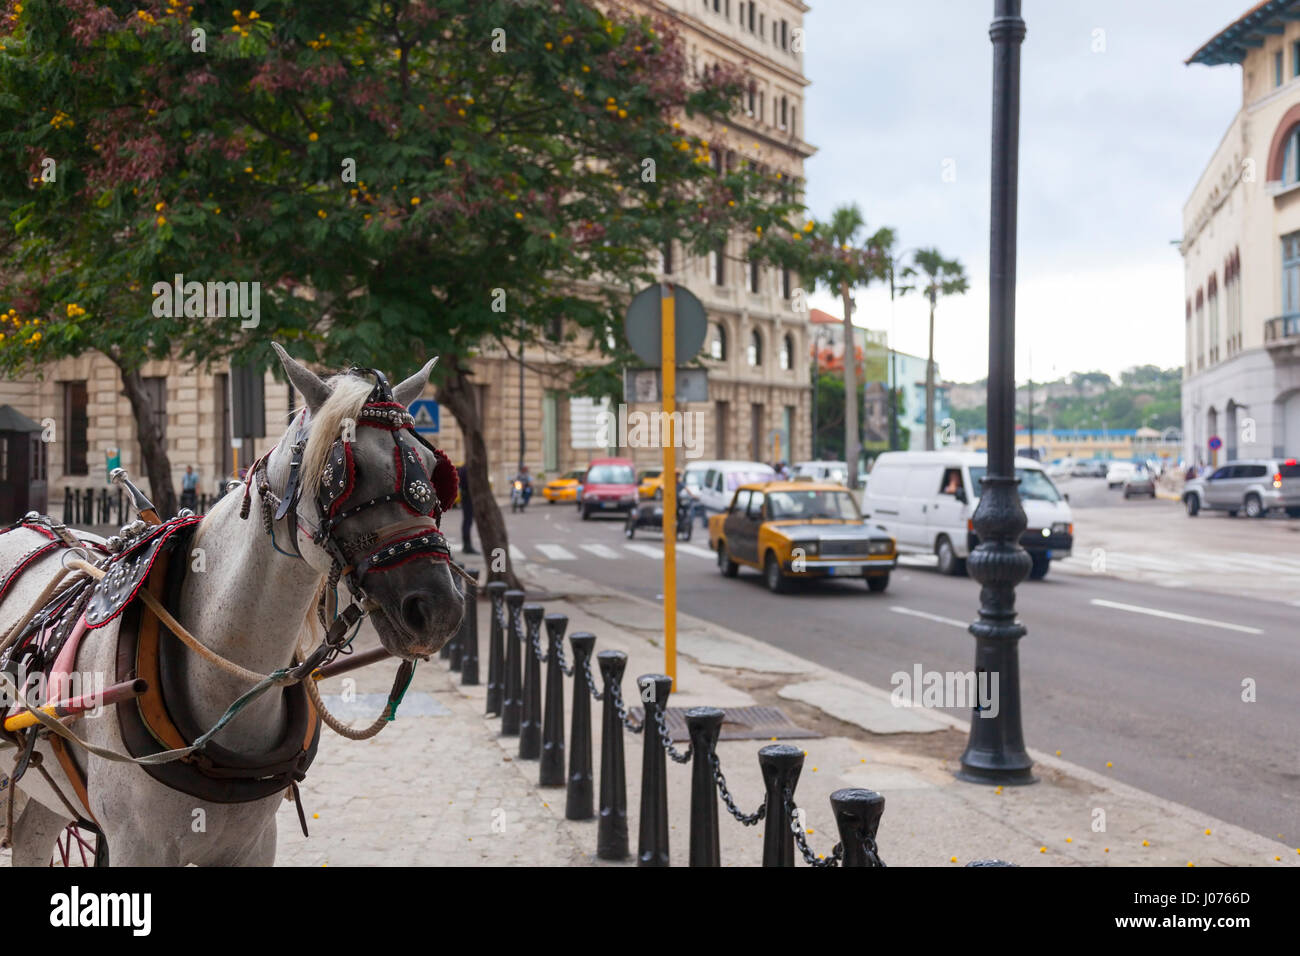 A horse Equus ferus caballus wearing a harness to pull a wagon at Plaza de San Francisco with cars driving by along - Stock Image